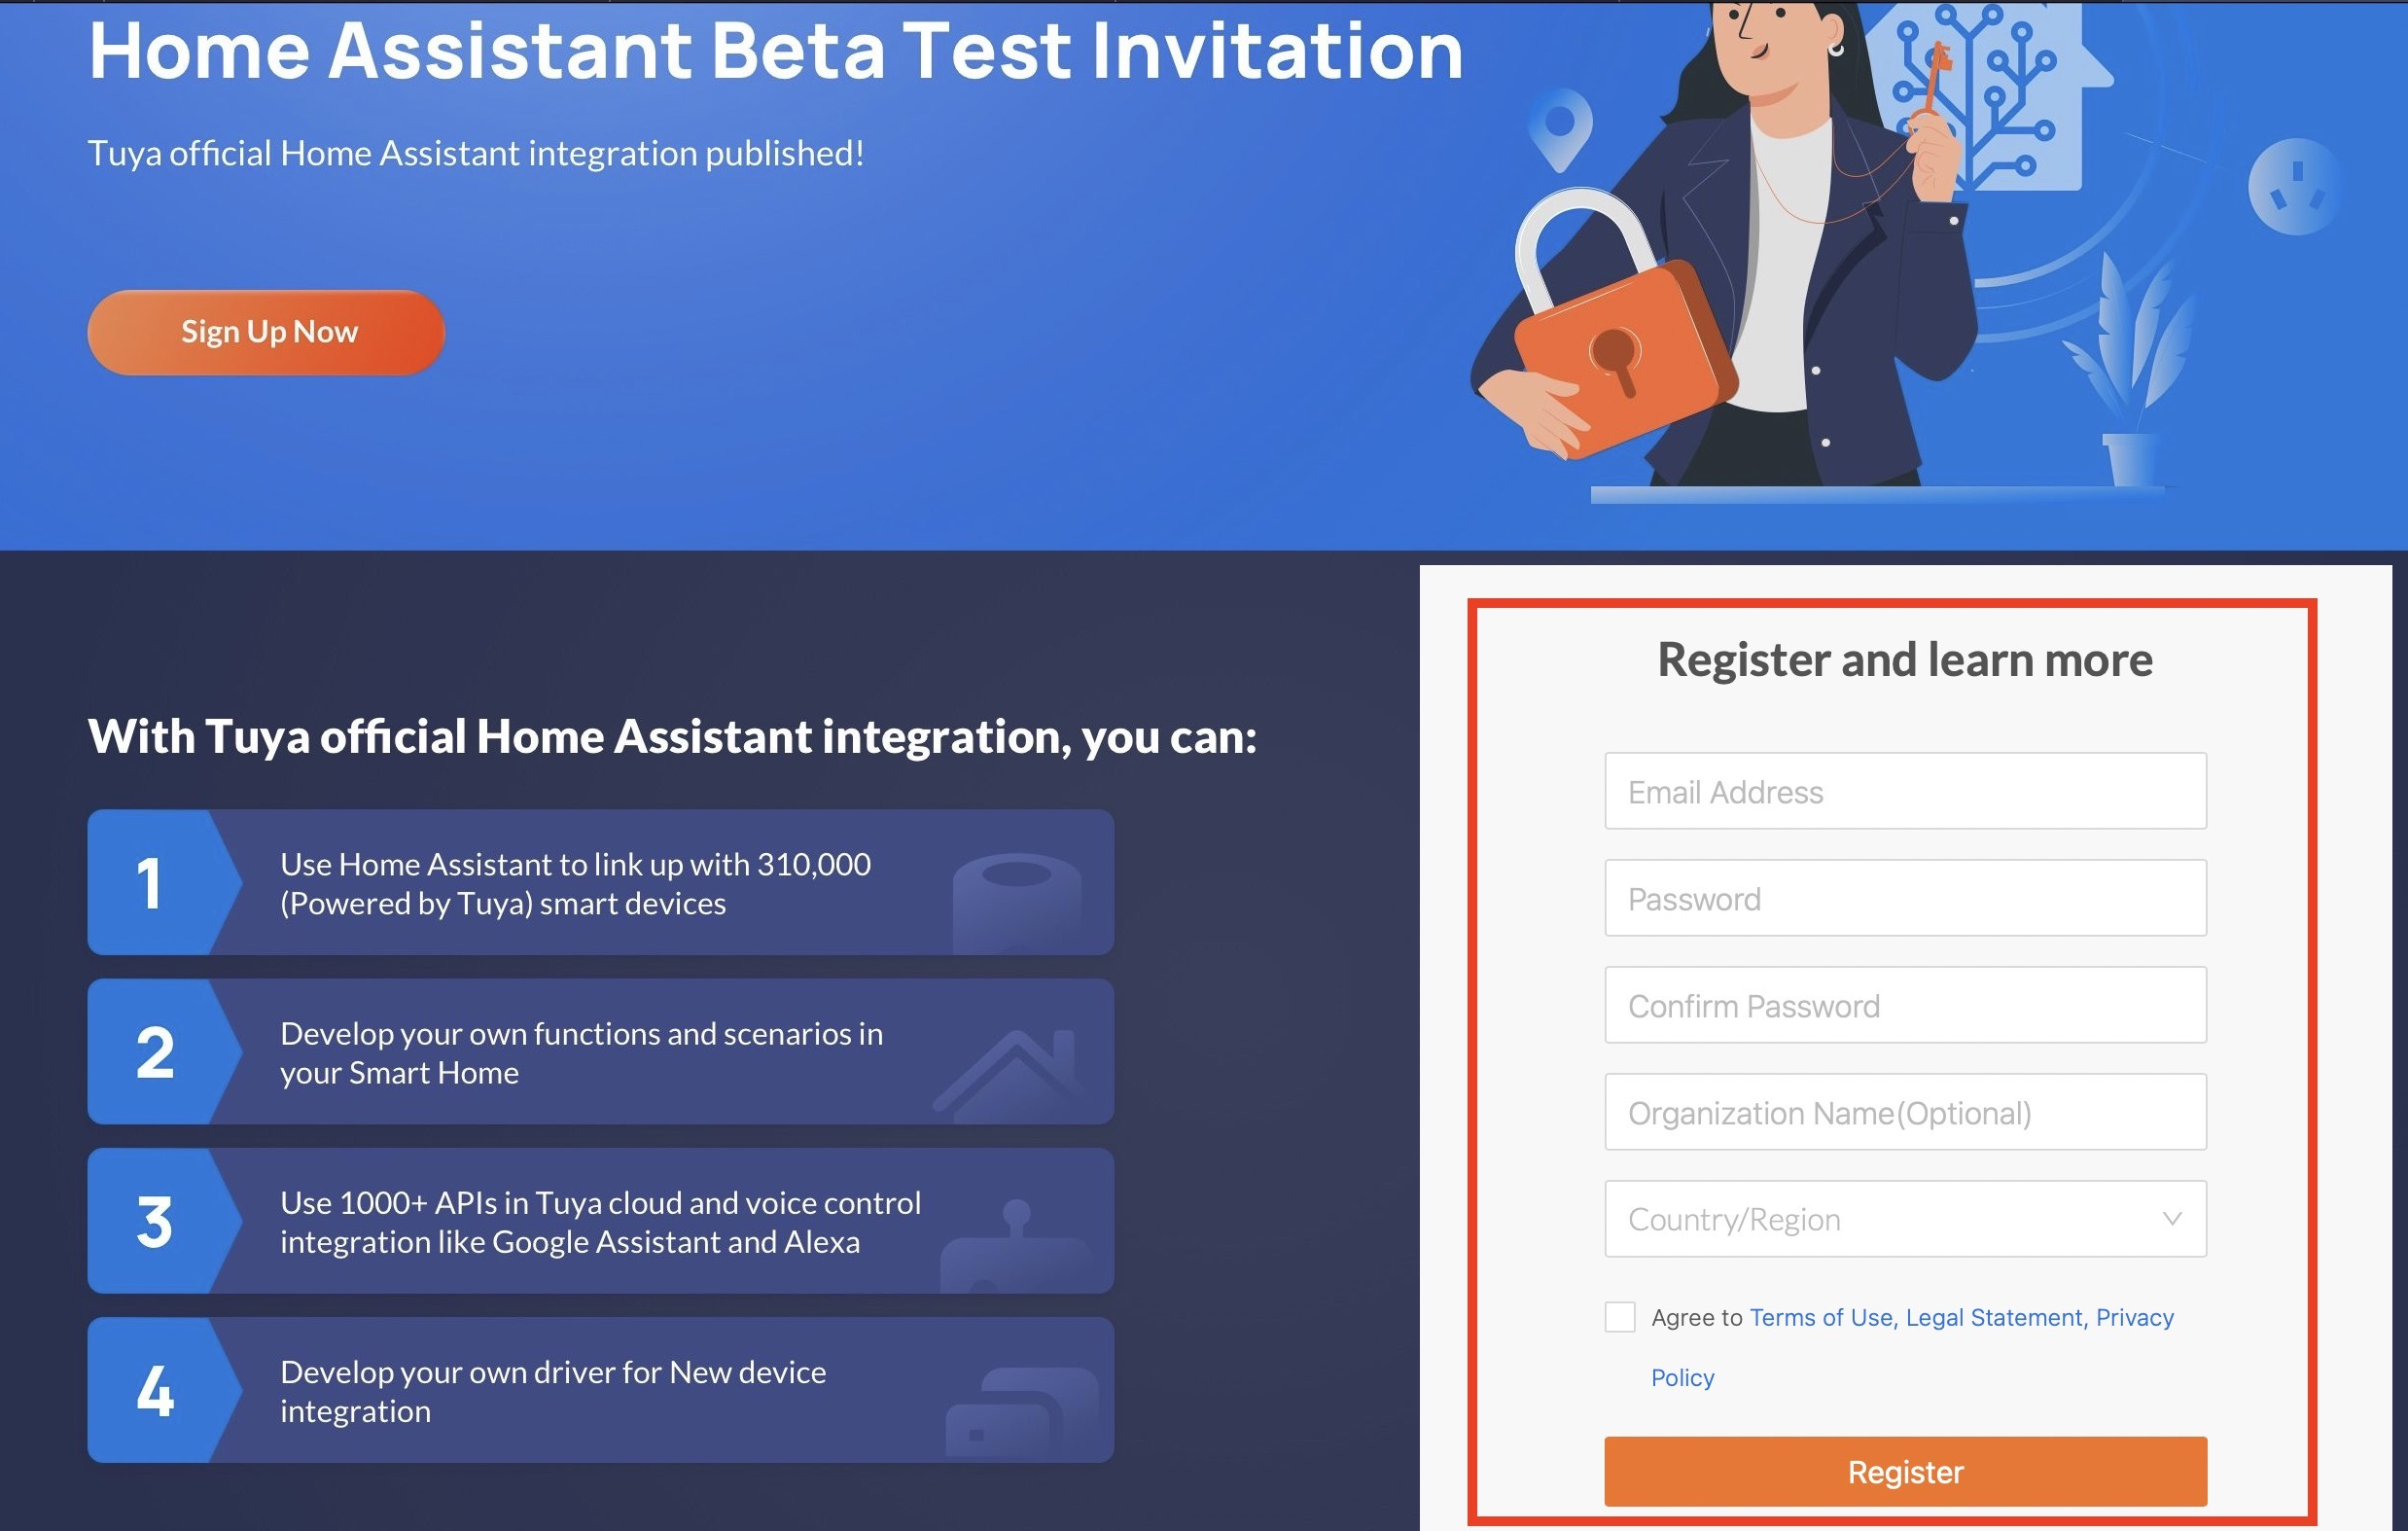 Home Assistant Tuya Beta Test invitation web page for registration.